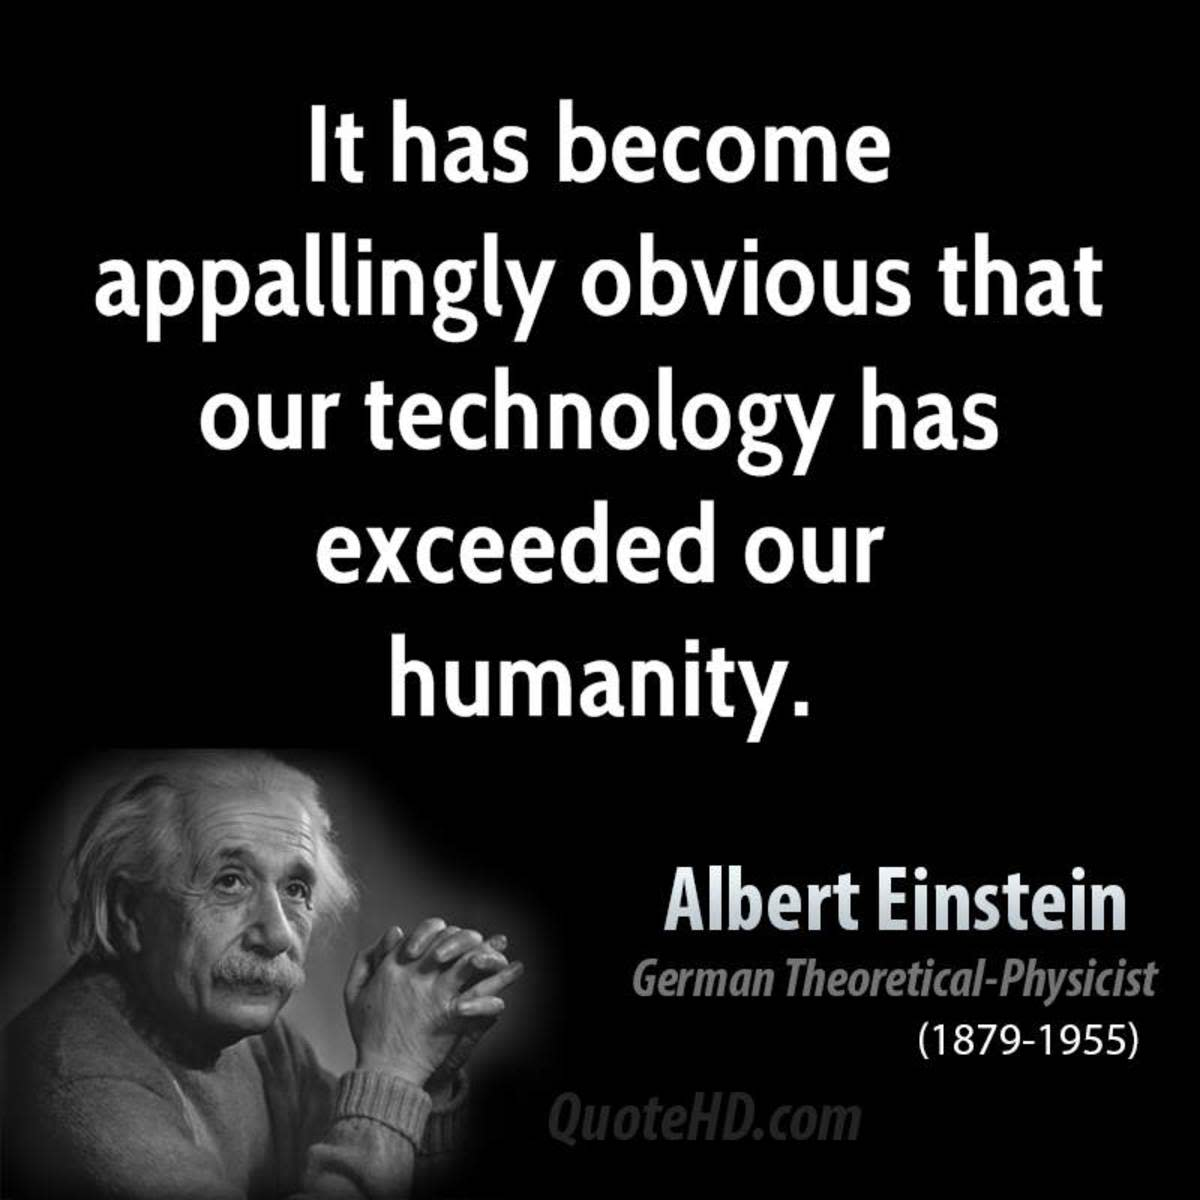 media-ecology-the-technological-society-how-real-is-real